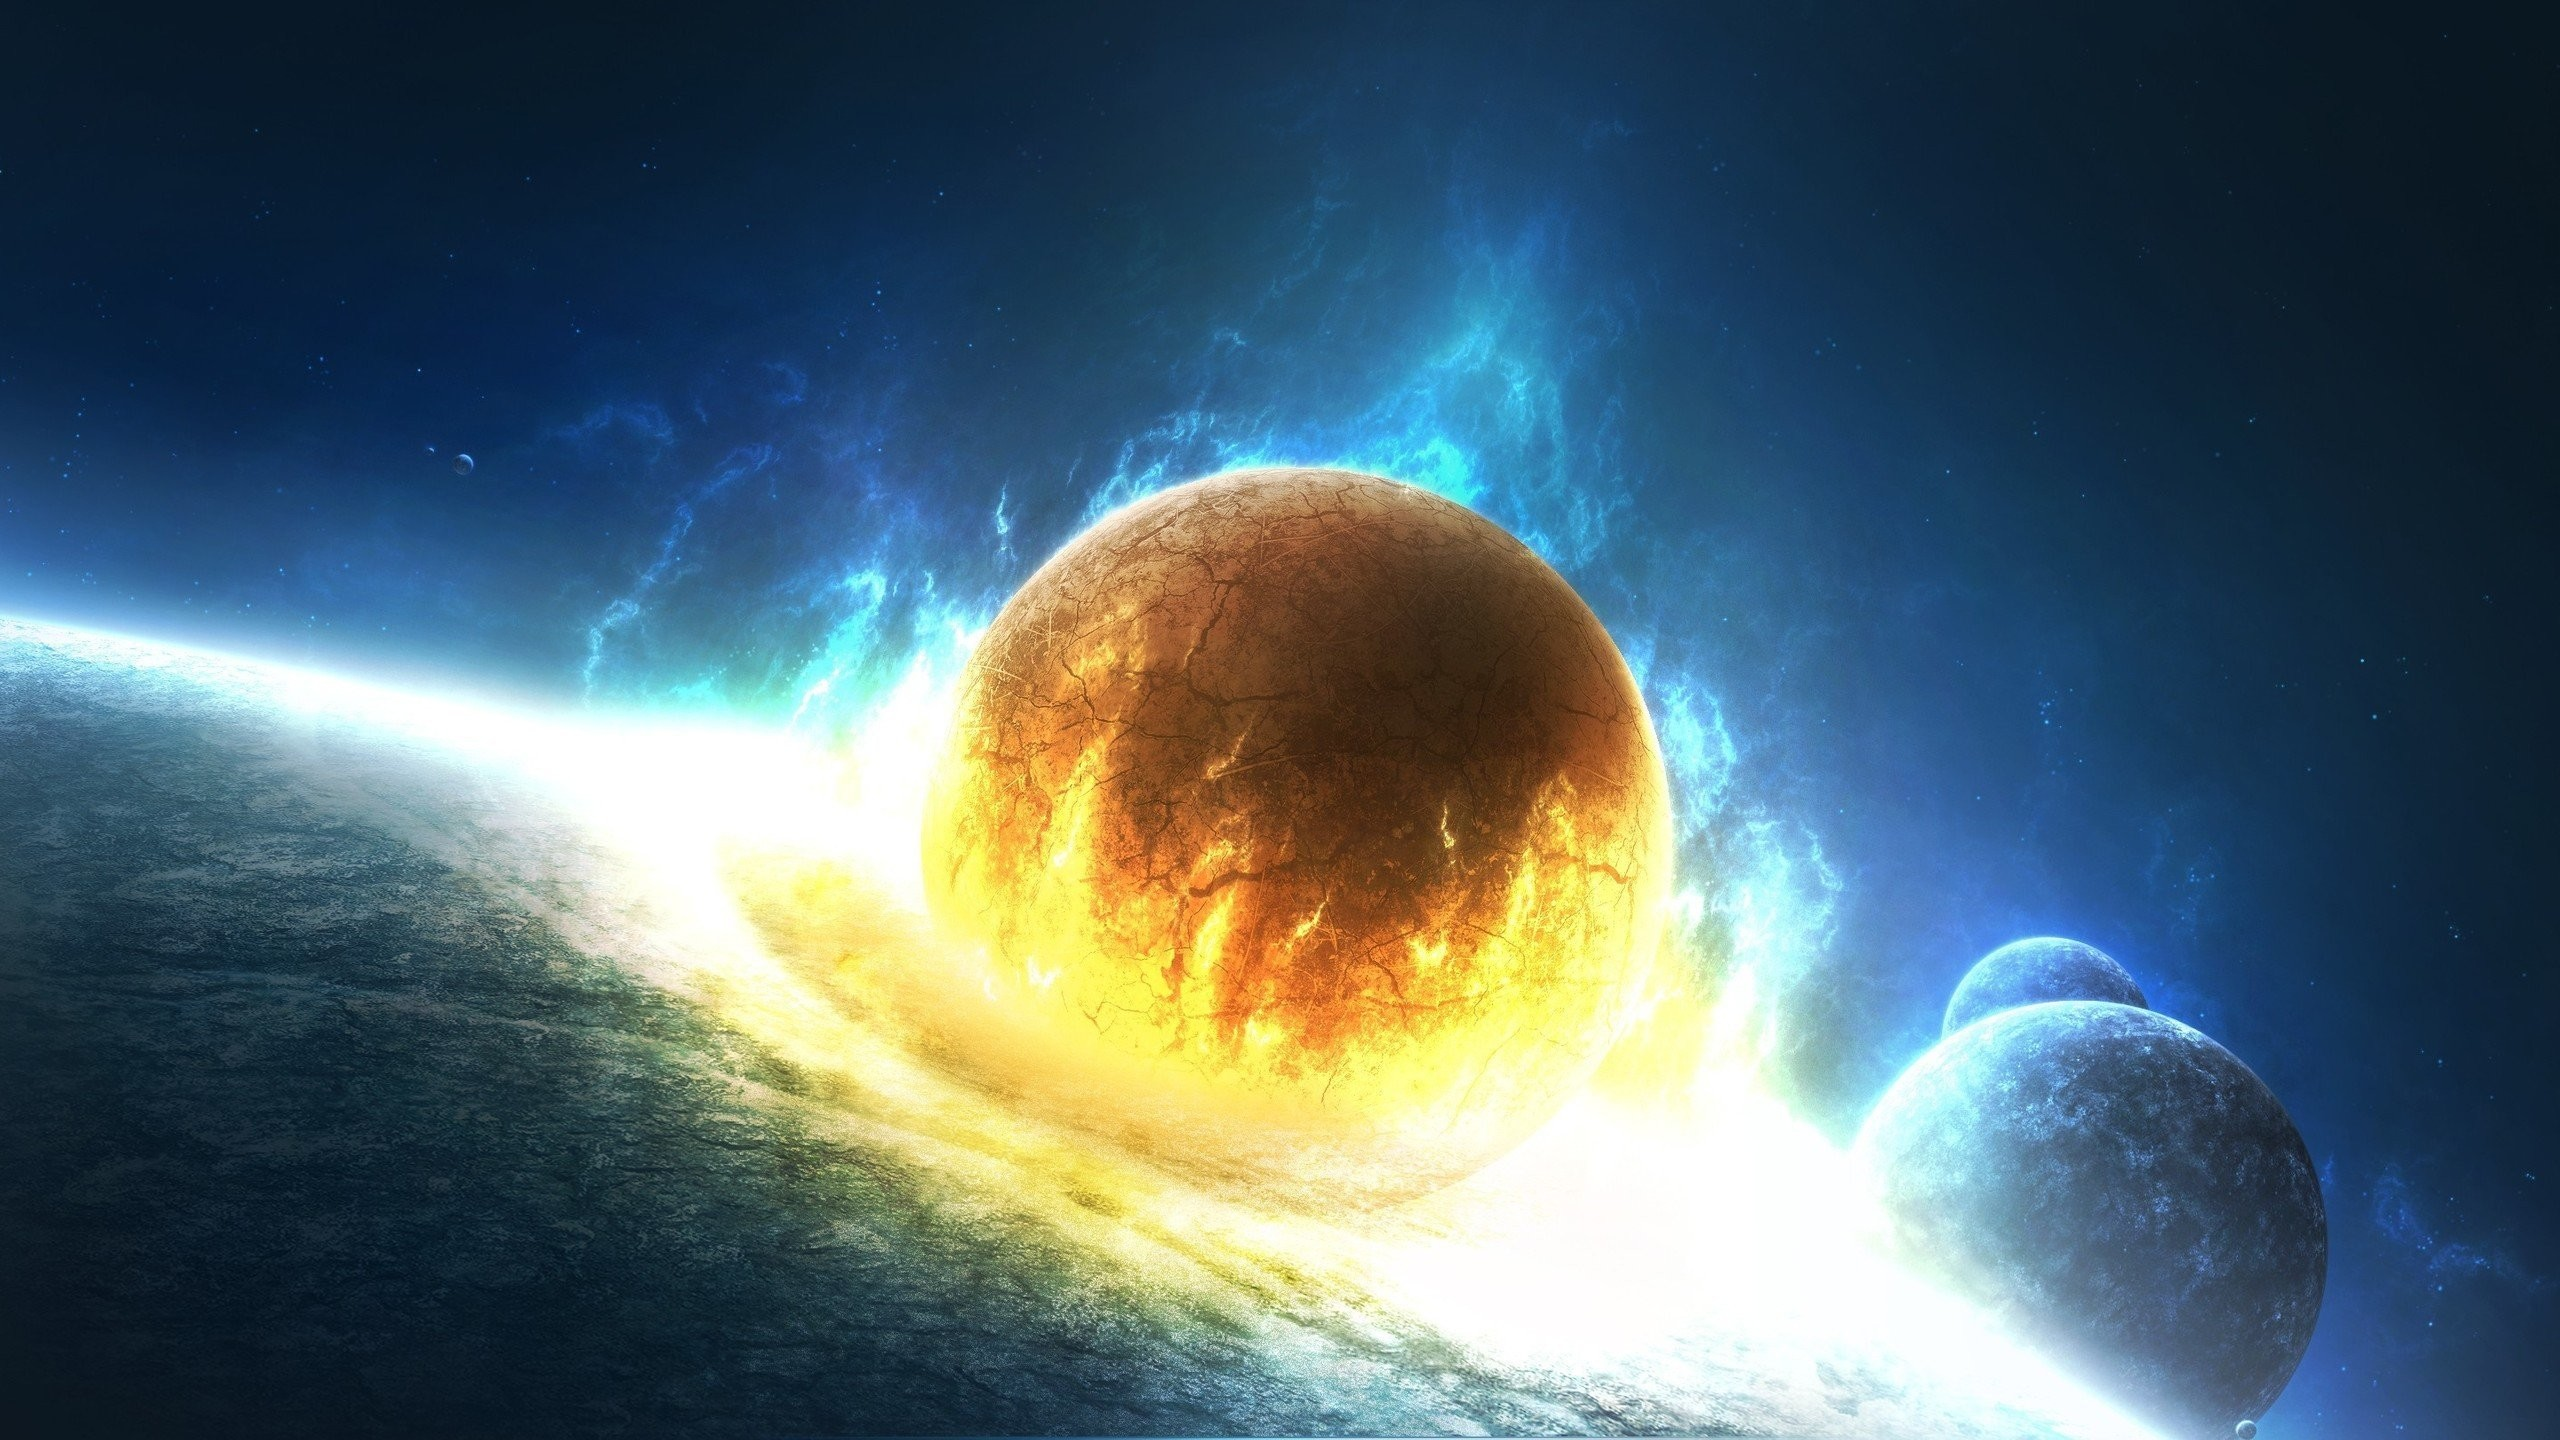 Outer space stars explosions planets fire Earth artwork collision wallpaper  | | 293421 | WallpaperUP